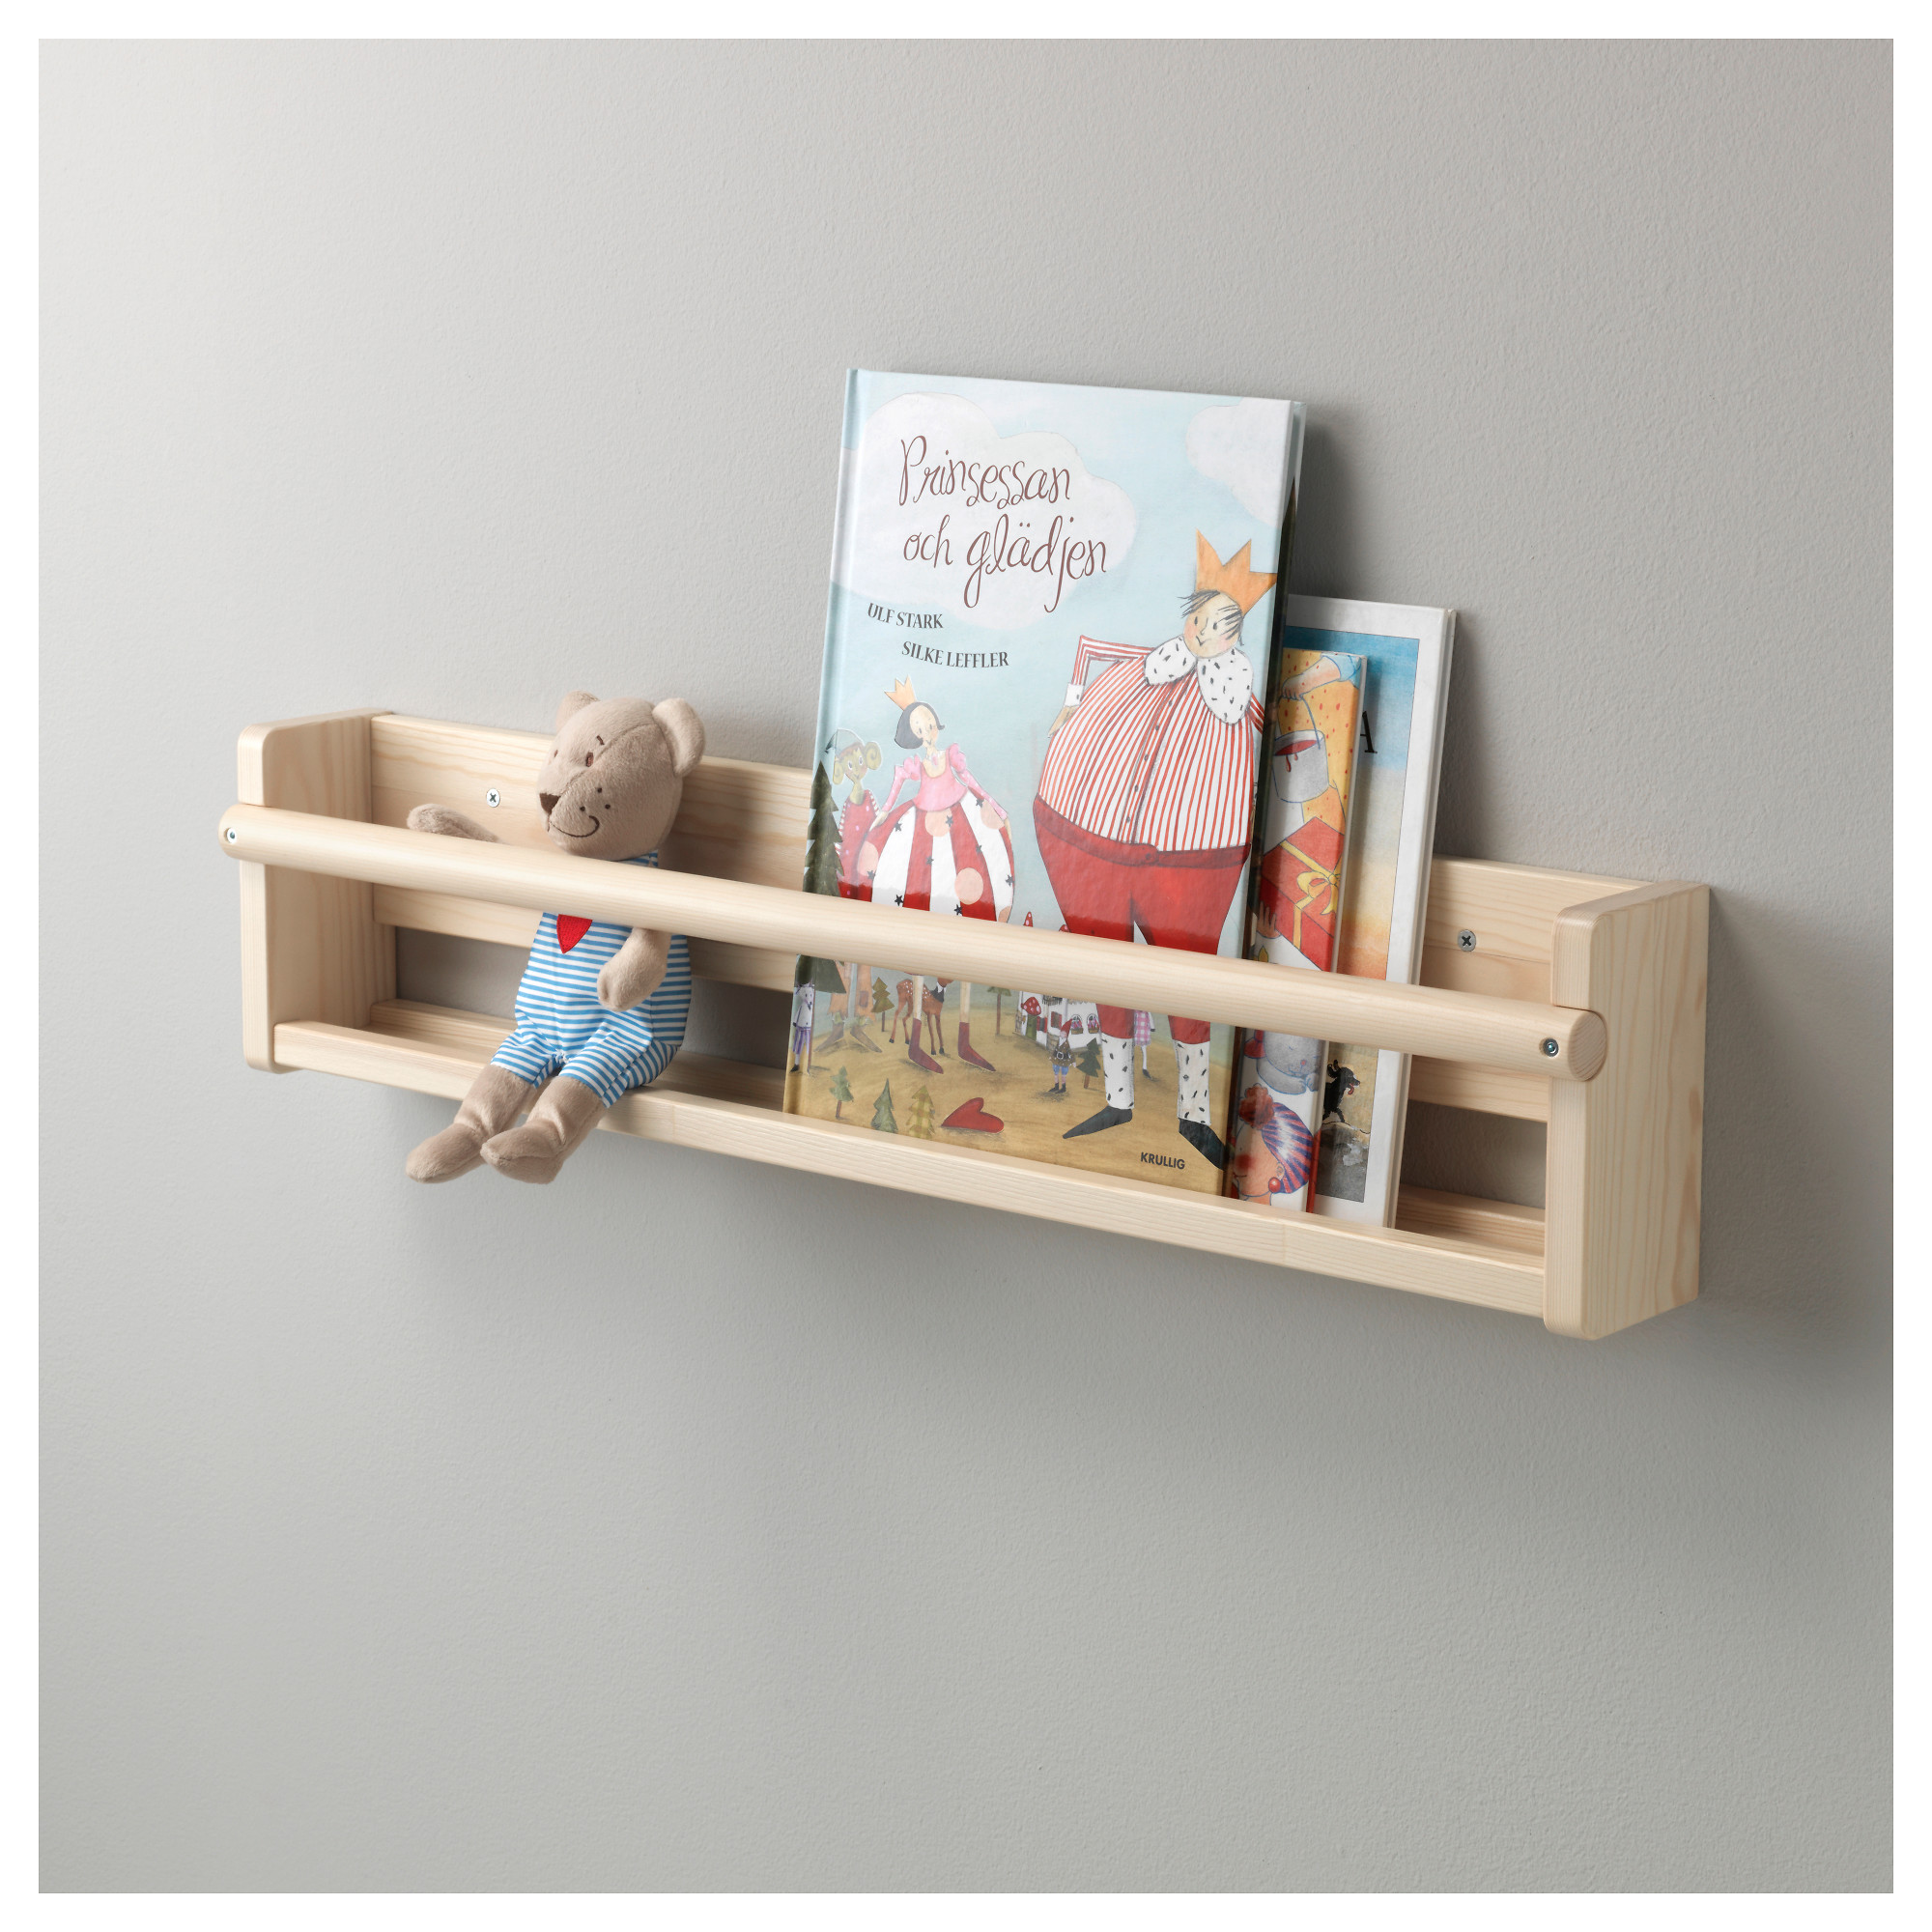 Ikea Mensole Libri.Ikea Flisat Wall Storage Hilary Alex In 2019 Ikea Wall